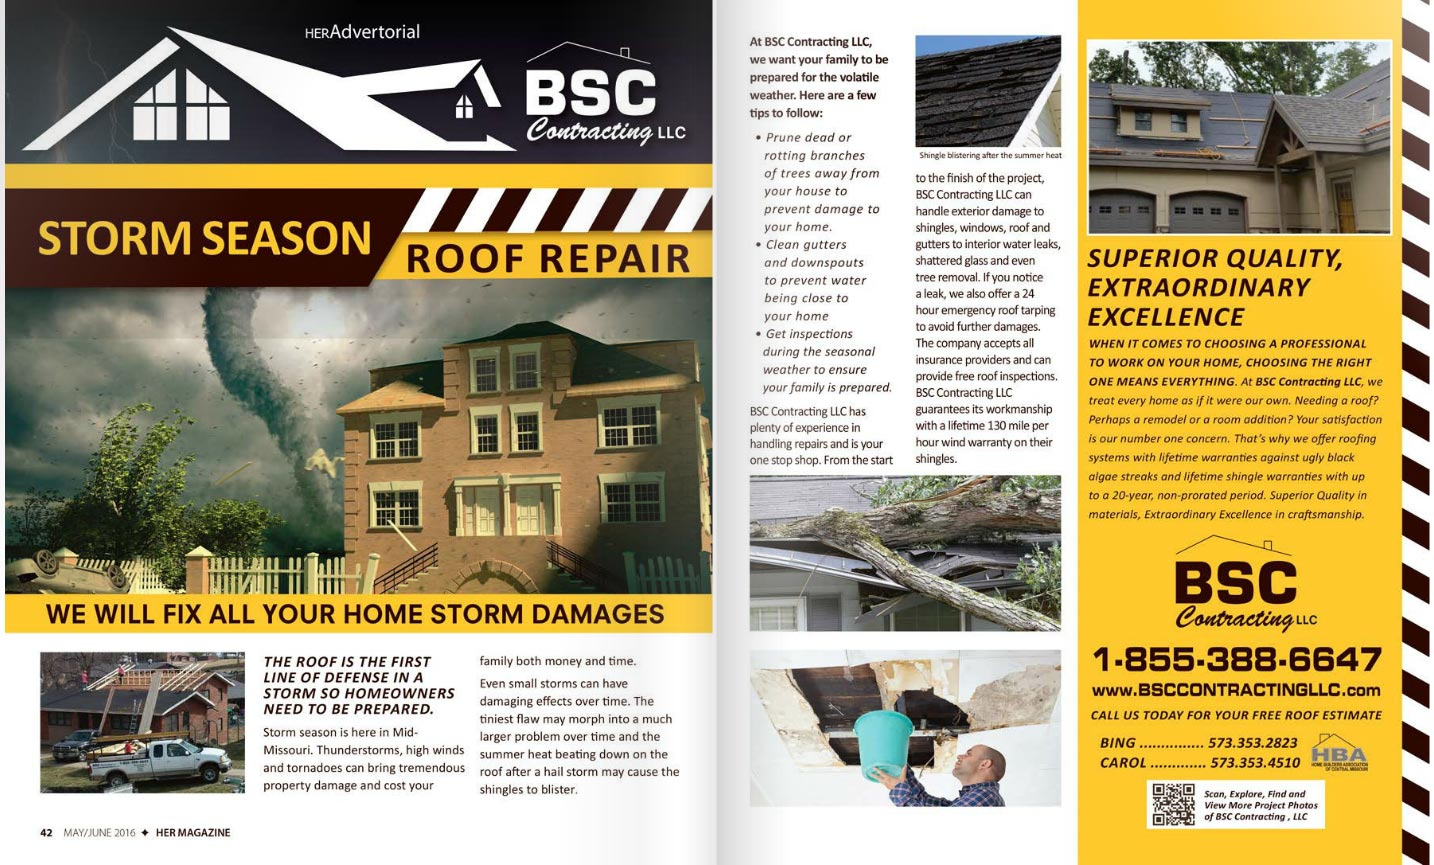 home remodeling contractors flyer landscaping flyer credit repair flyer home remodeling flyer. Black Bedroom Furniture Sets. Home Design Ideas